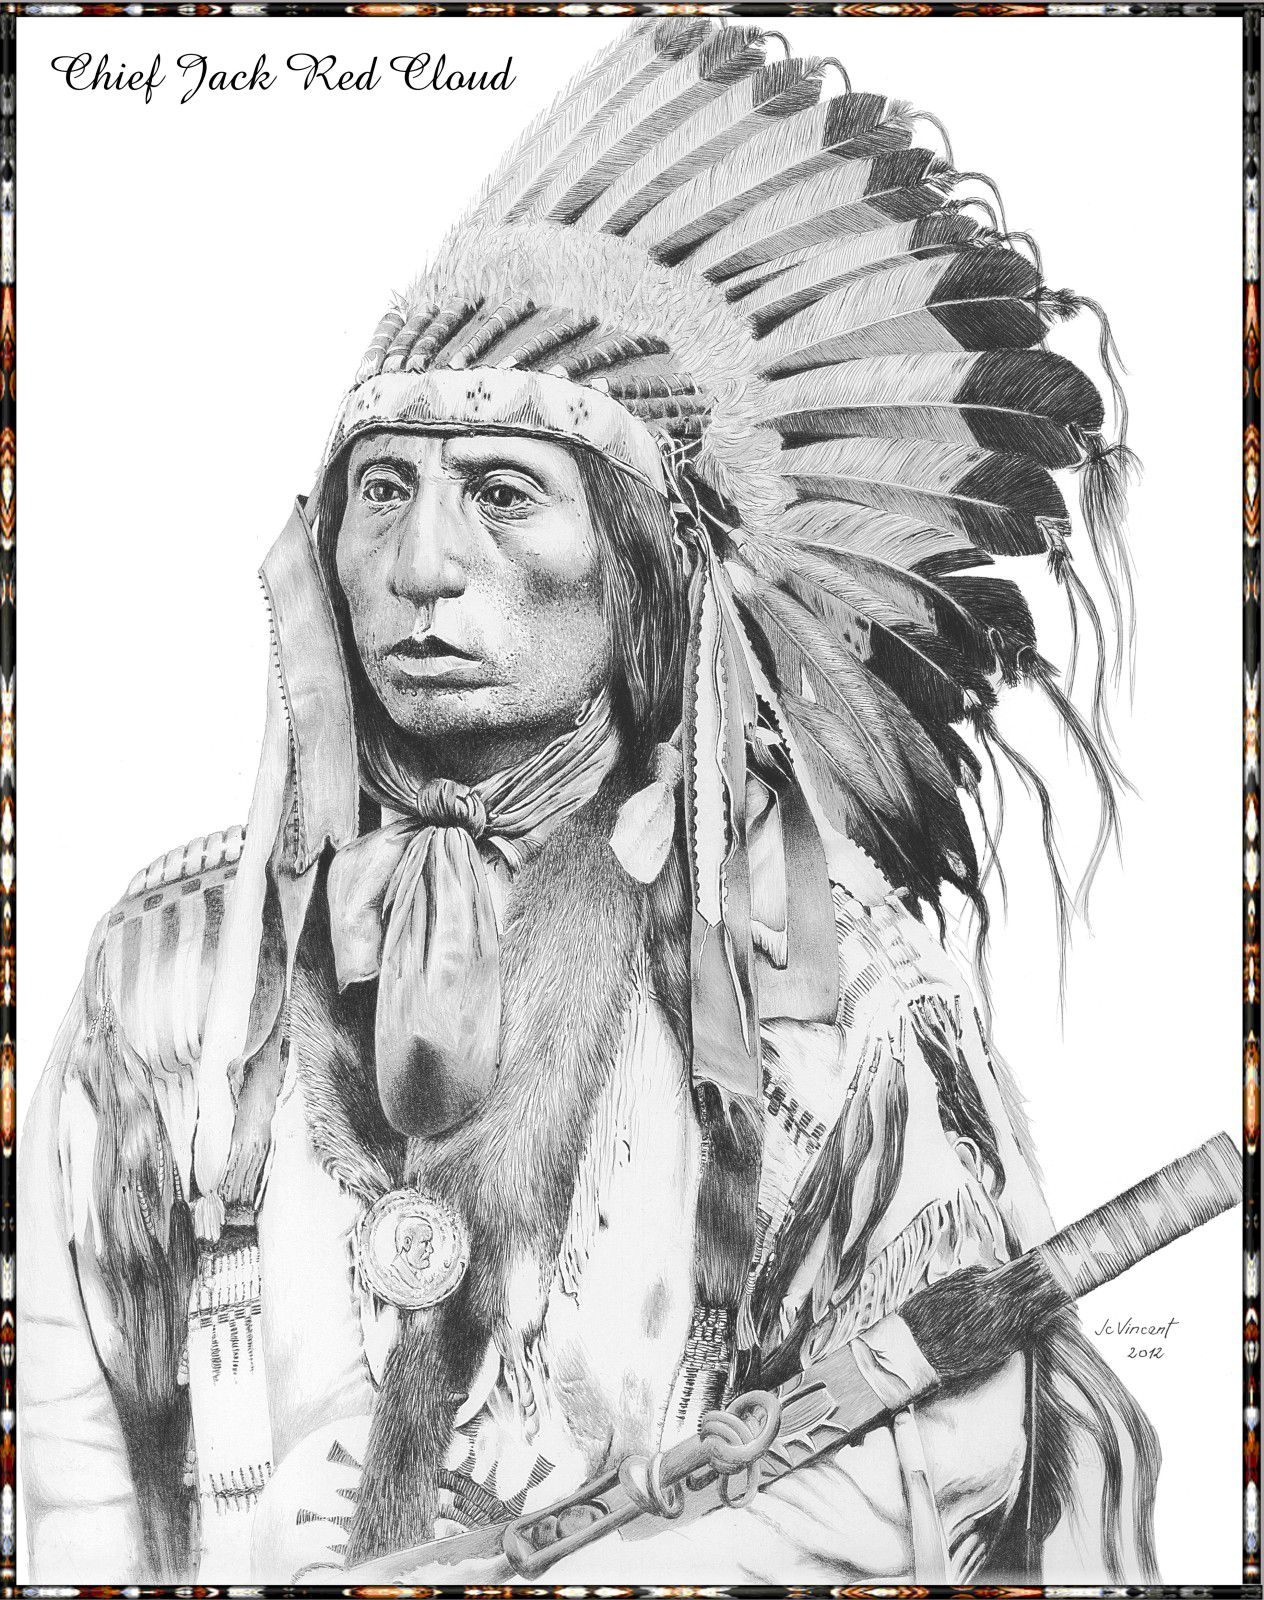 - DESSIN D'INDIEN - Chief Jack Red Cloud - 09